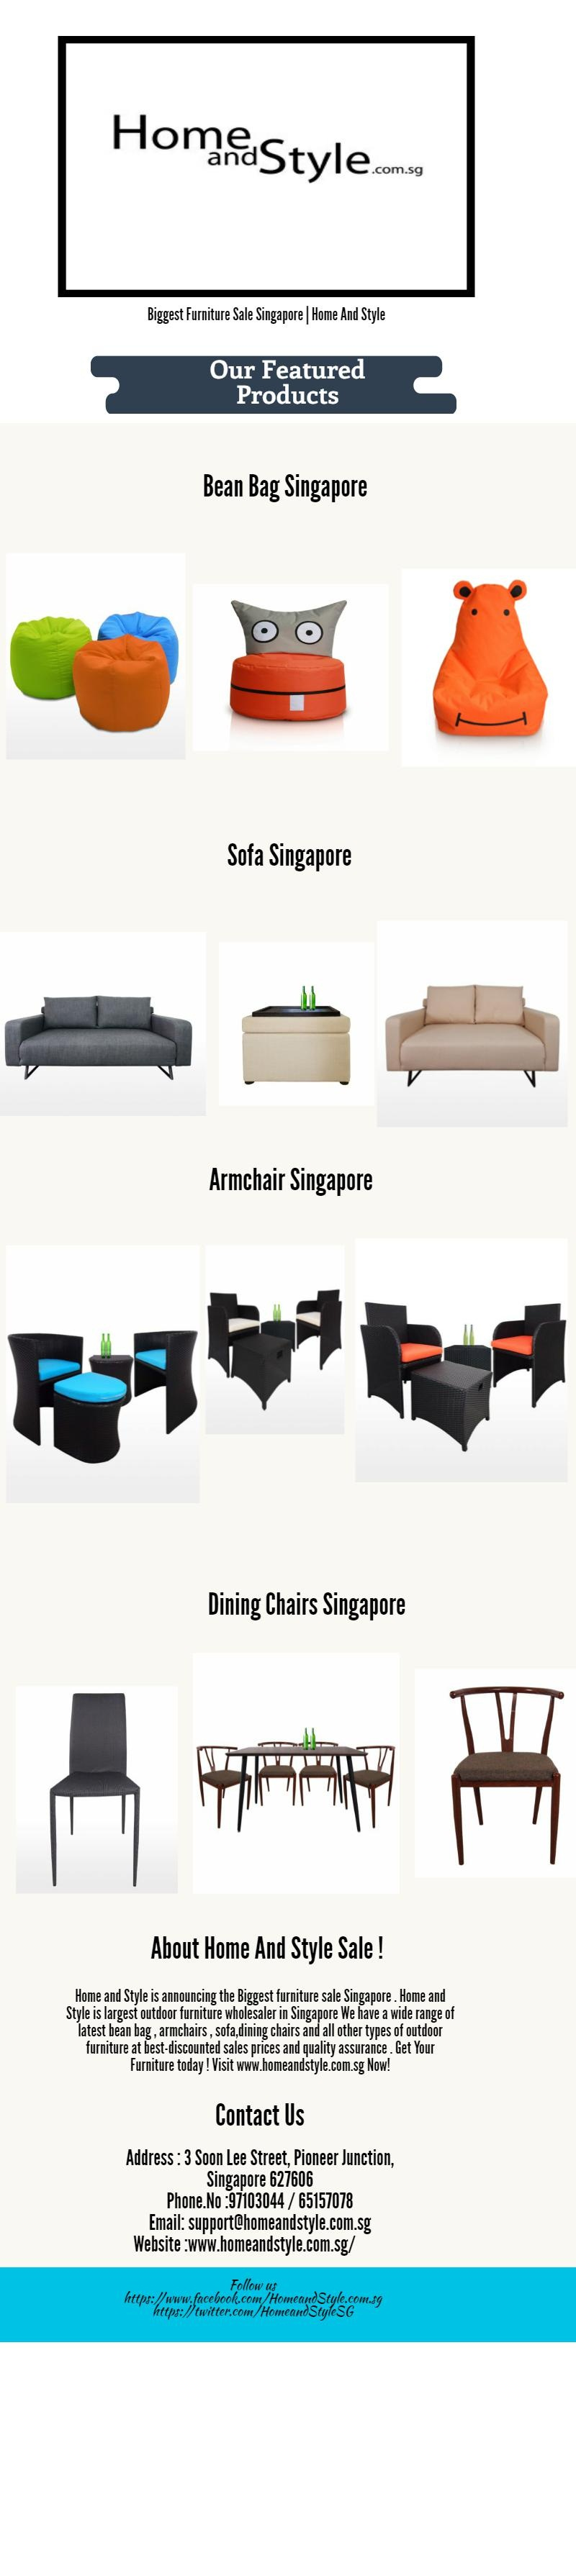 Home and style is announcing the biggest furniture sale singapore